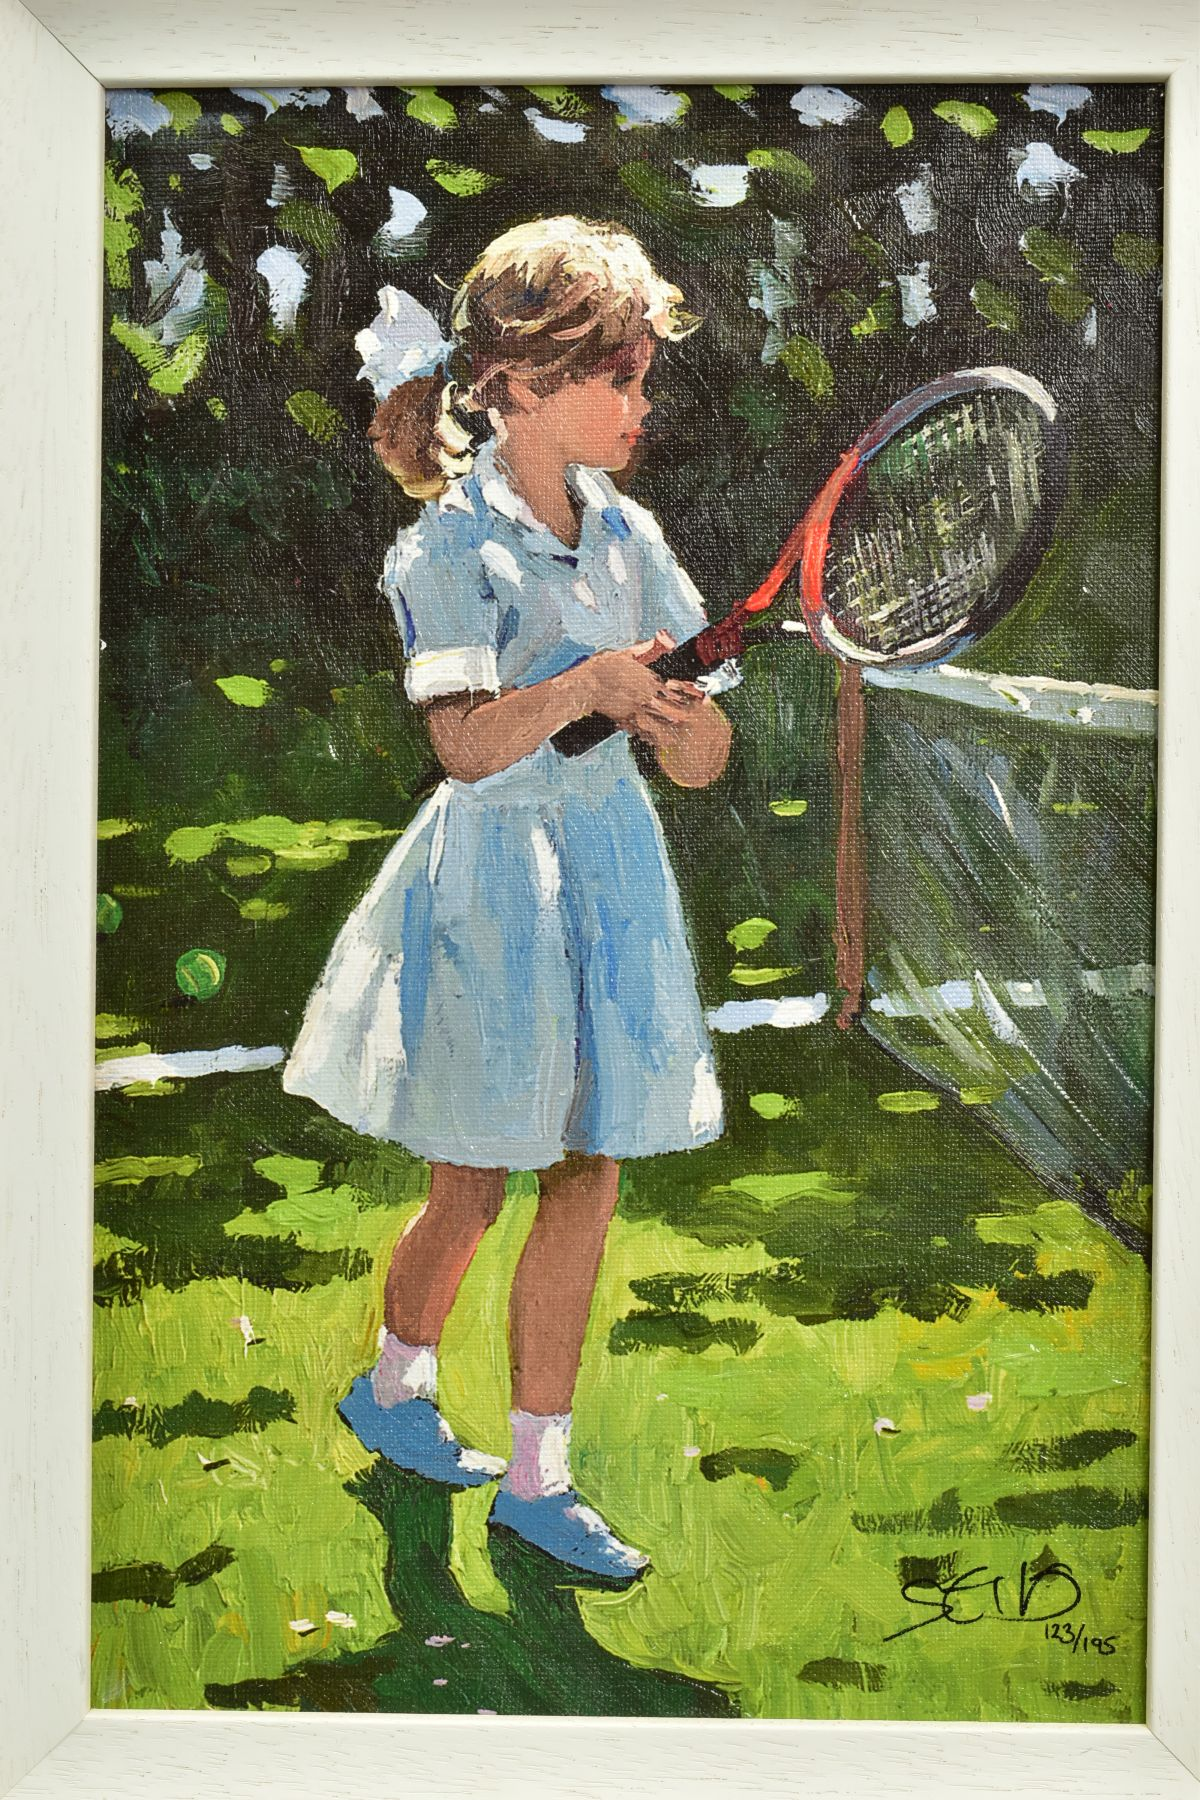 SHERREE VALENTINE DAINES (BRITISH 1959), 'Playful Times I', a Limited Edition print of a young - Image 2 of 7